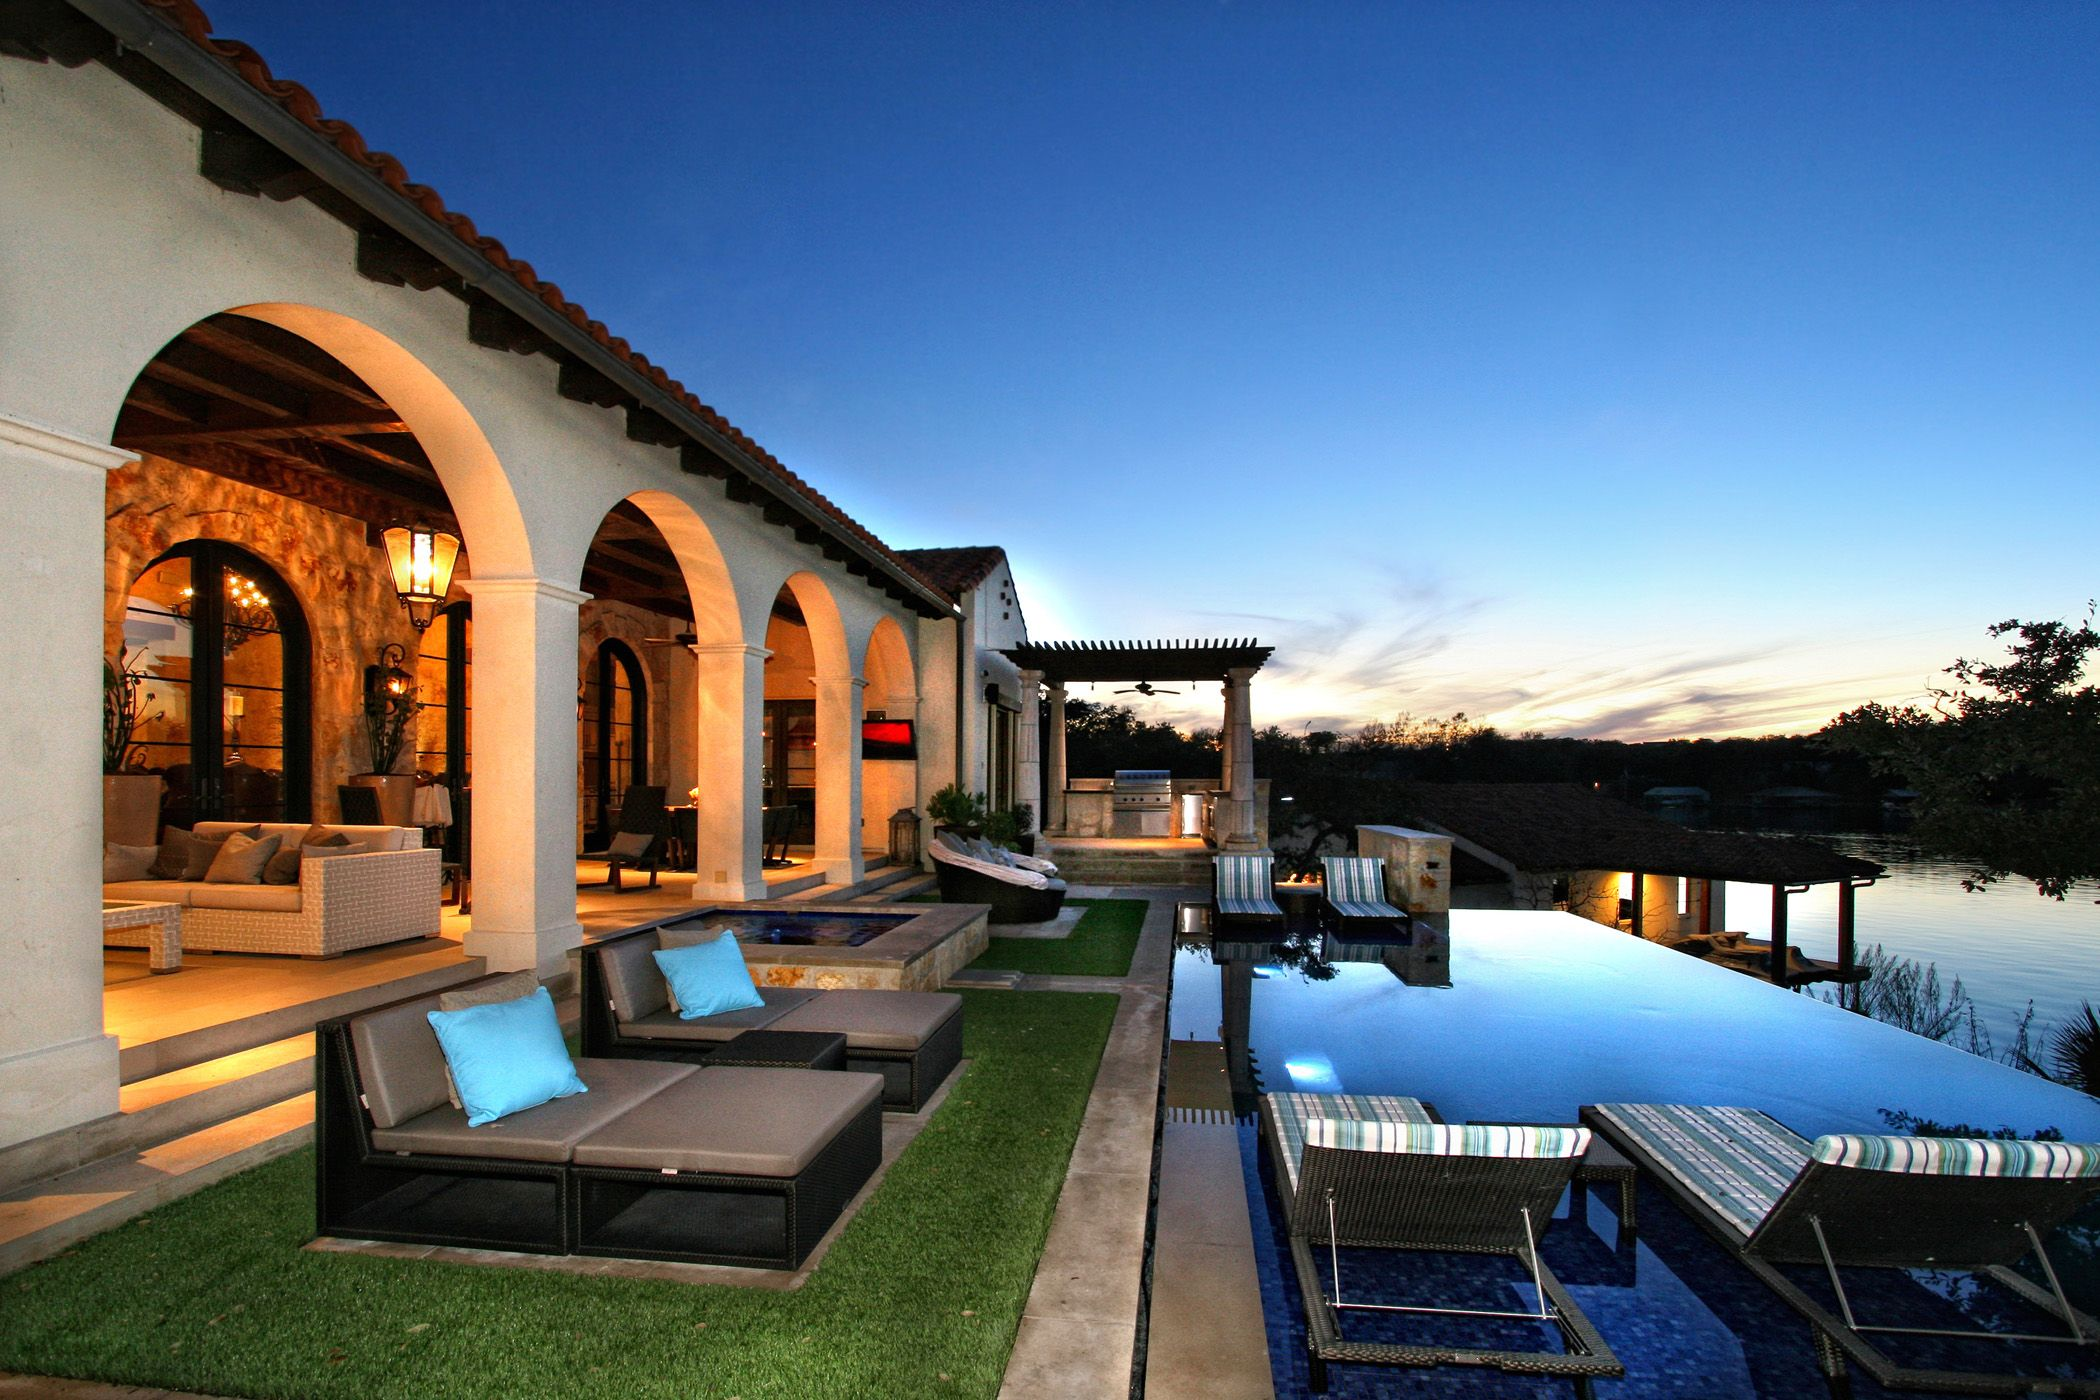 Best Kitchen Gallery: Horseshoe Bay Lakefront Outdoor Living And Pool By Zbranek Holt of Home Builders In Austin on rachelxblog.com